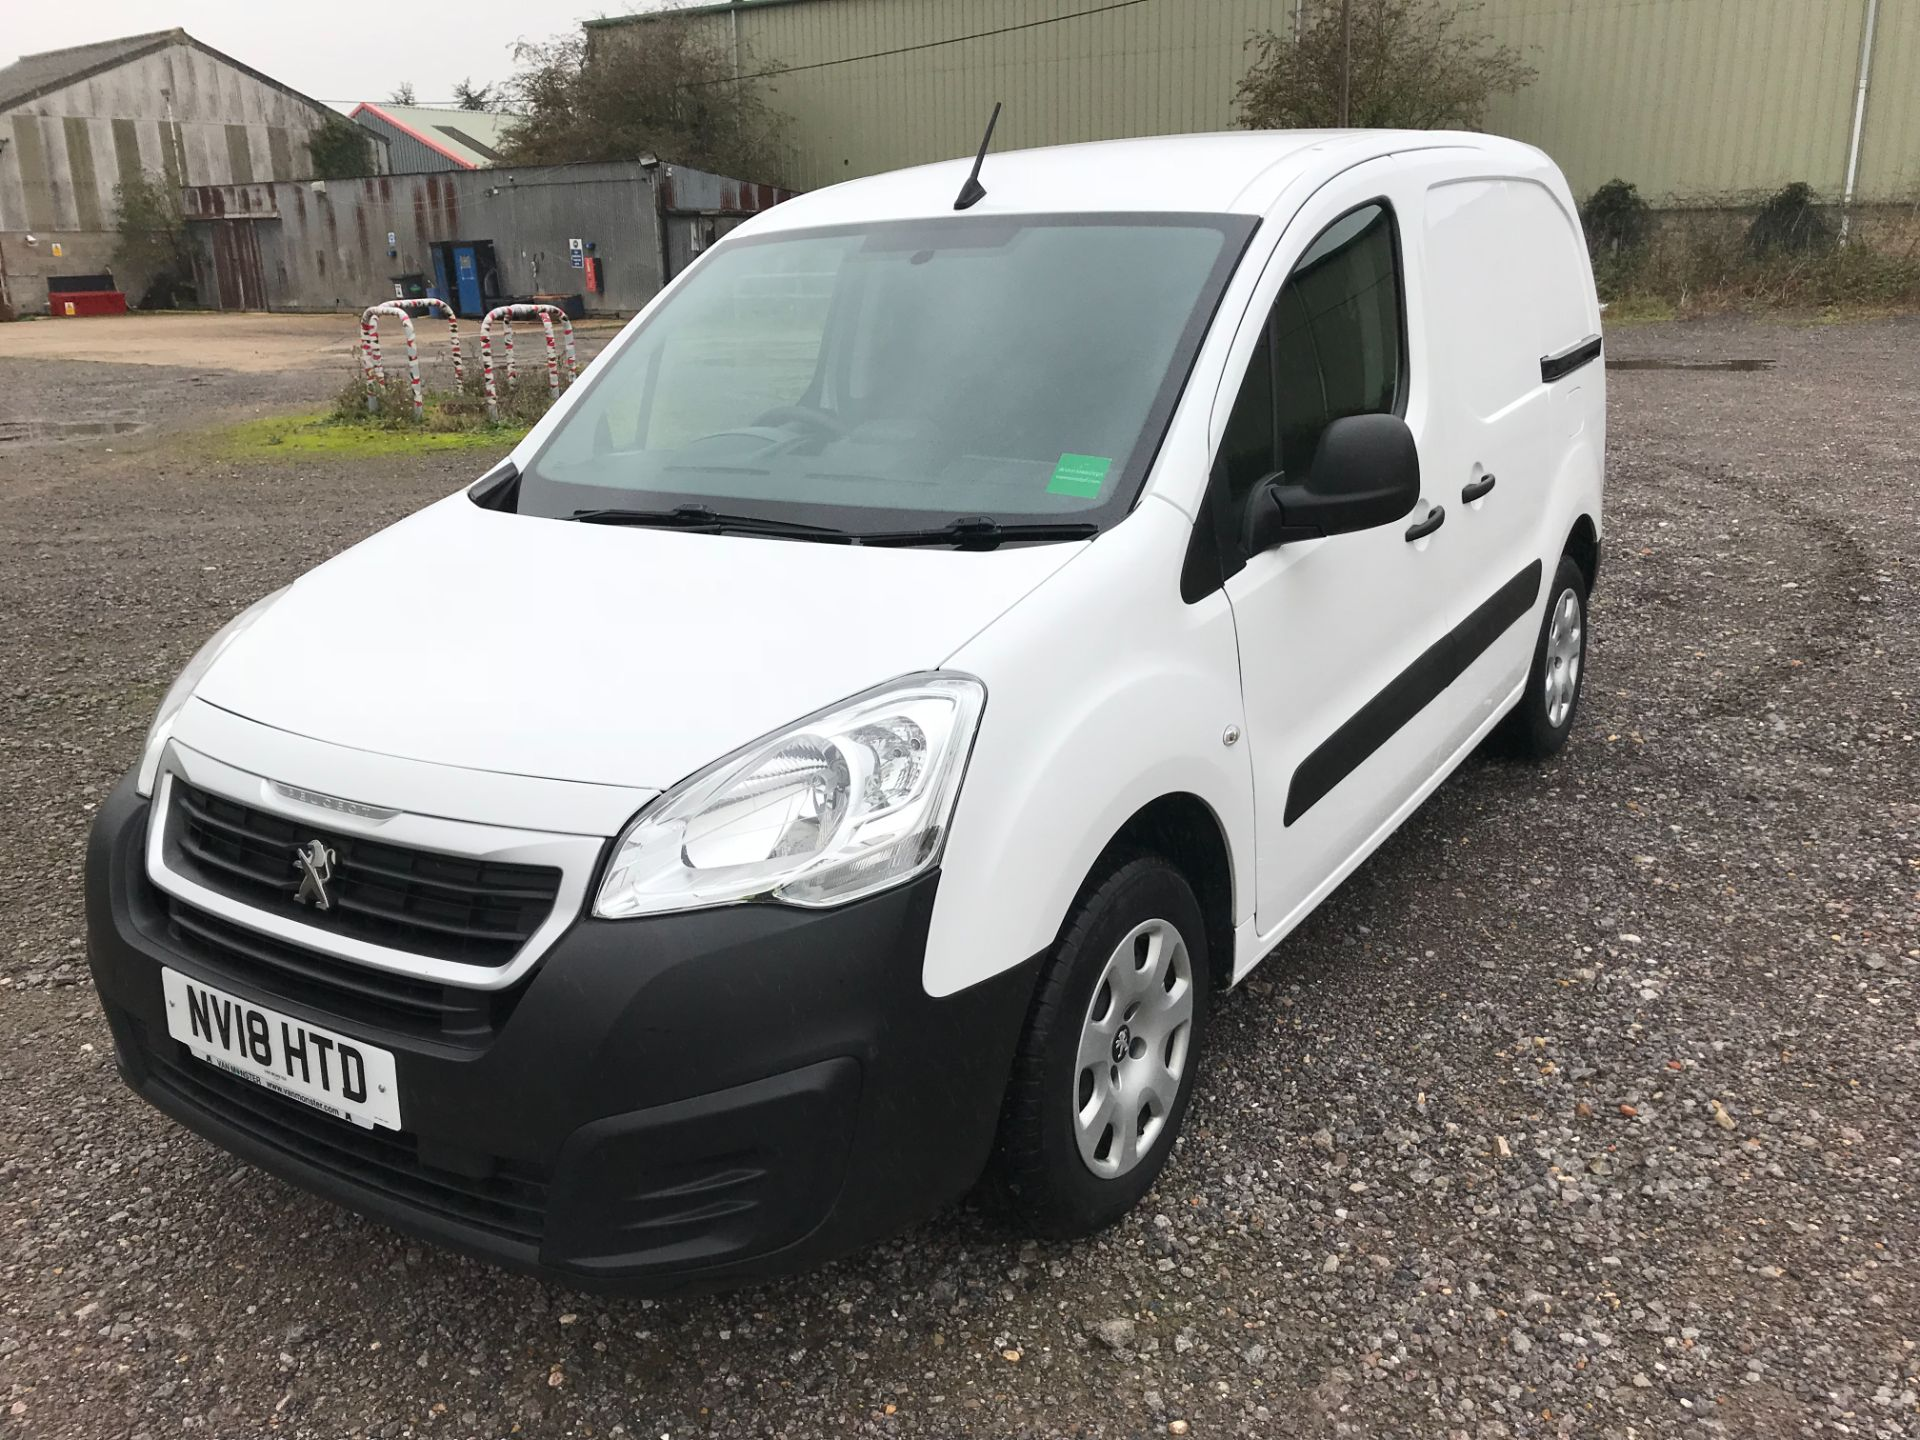 2018 Peugeot Partner 850 1.6 Bluehdi 100 Professional Van [Non Ss] *Restricted to 70 MPH* Euro 6 (NV18HTD) Image 3